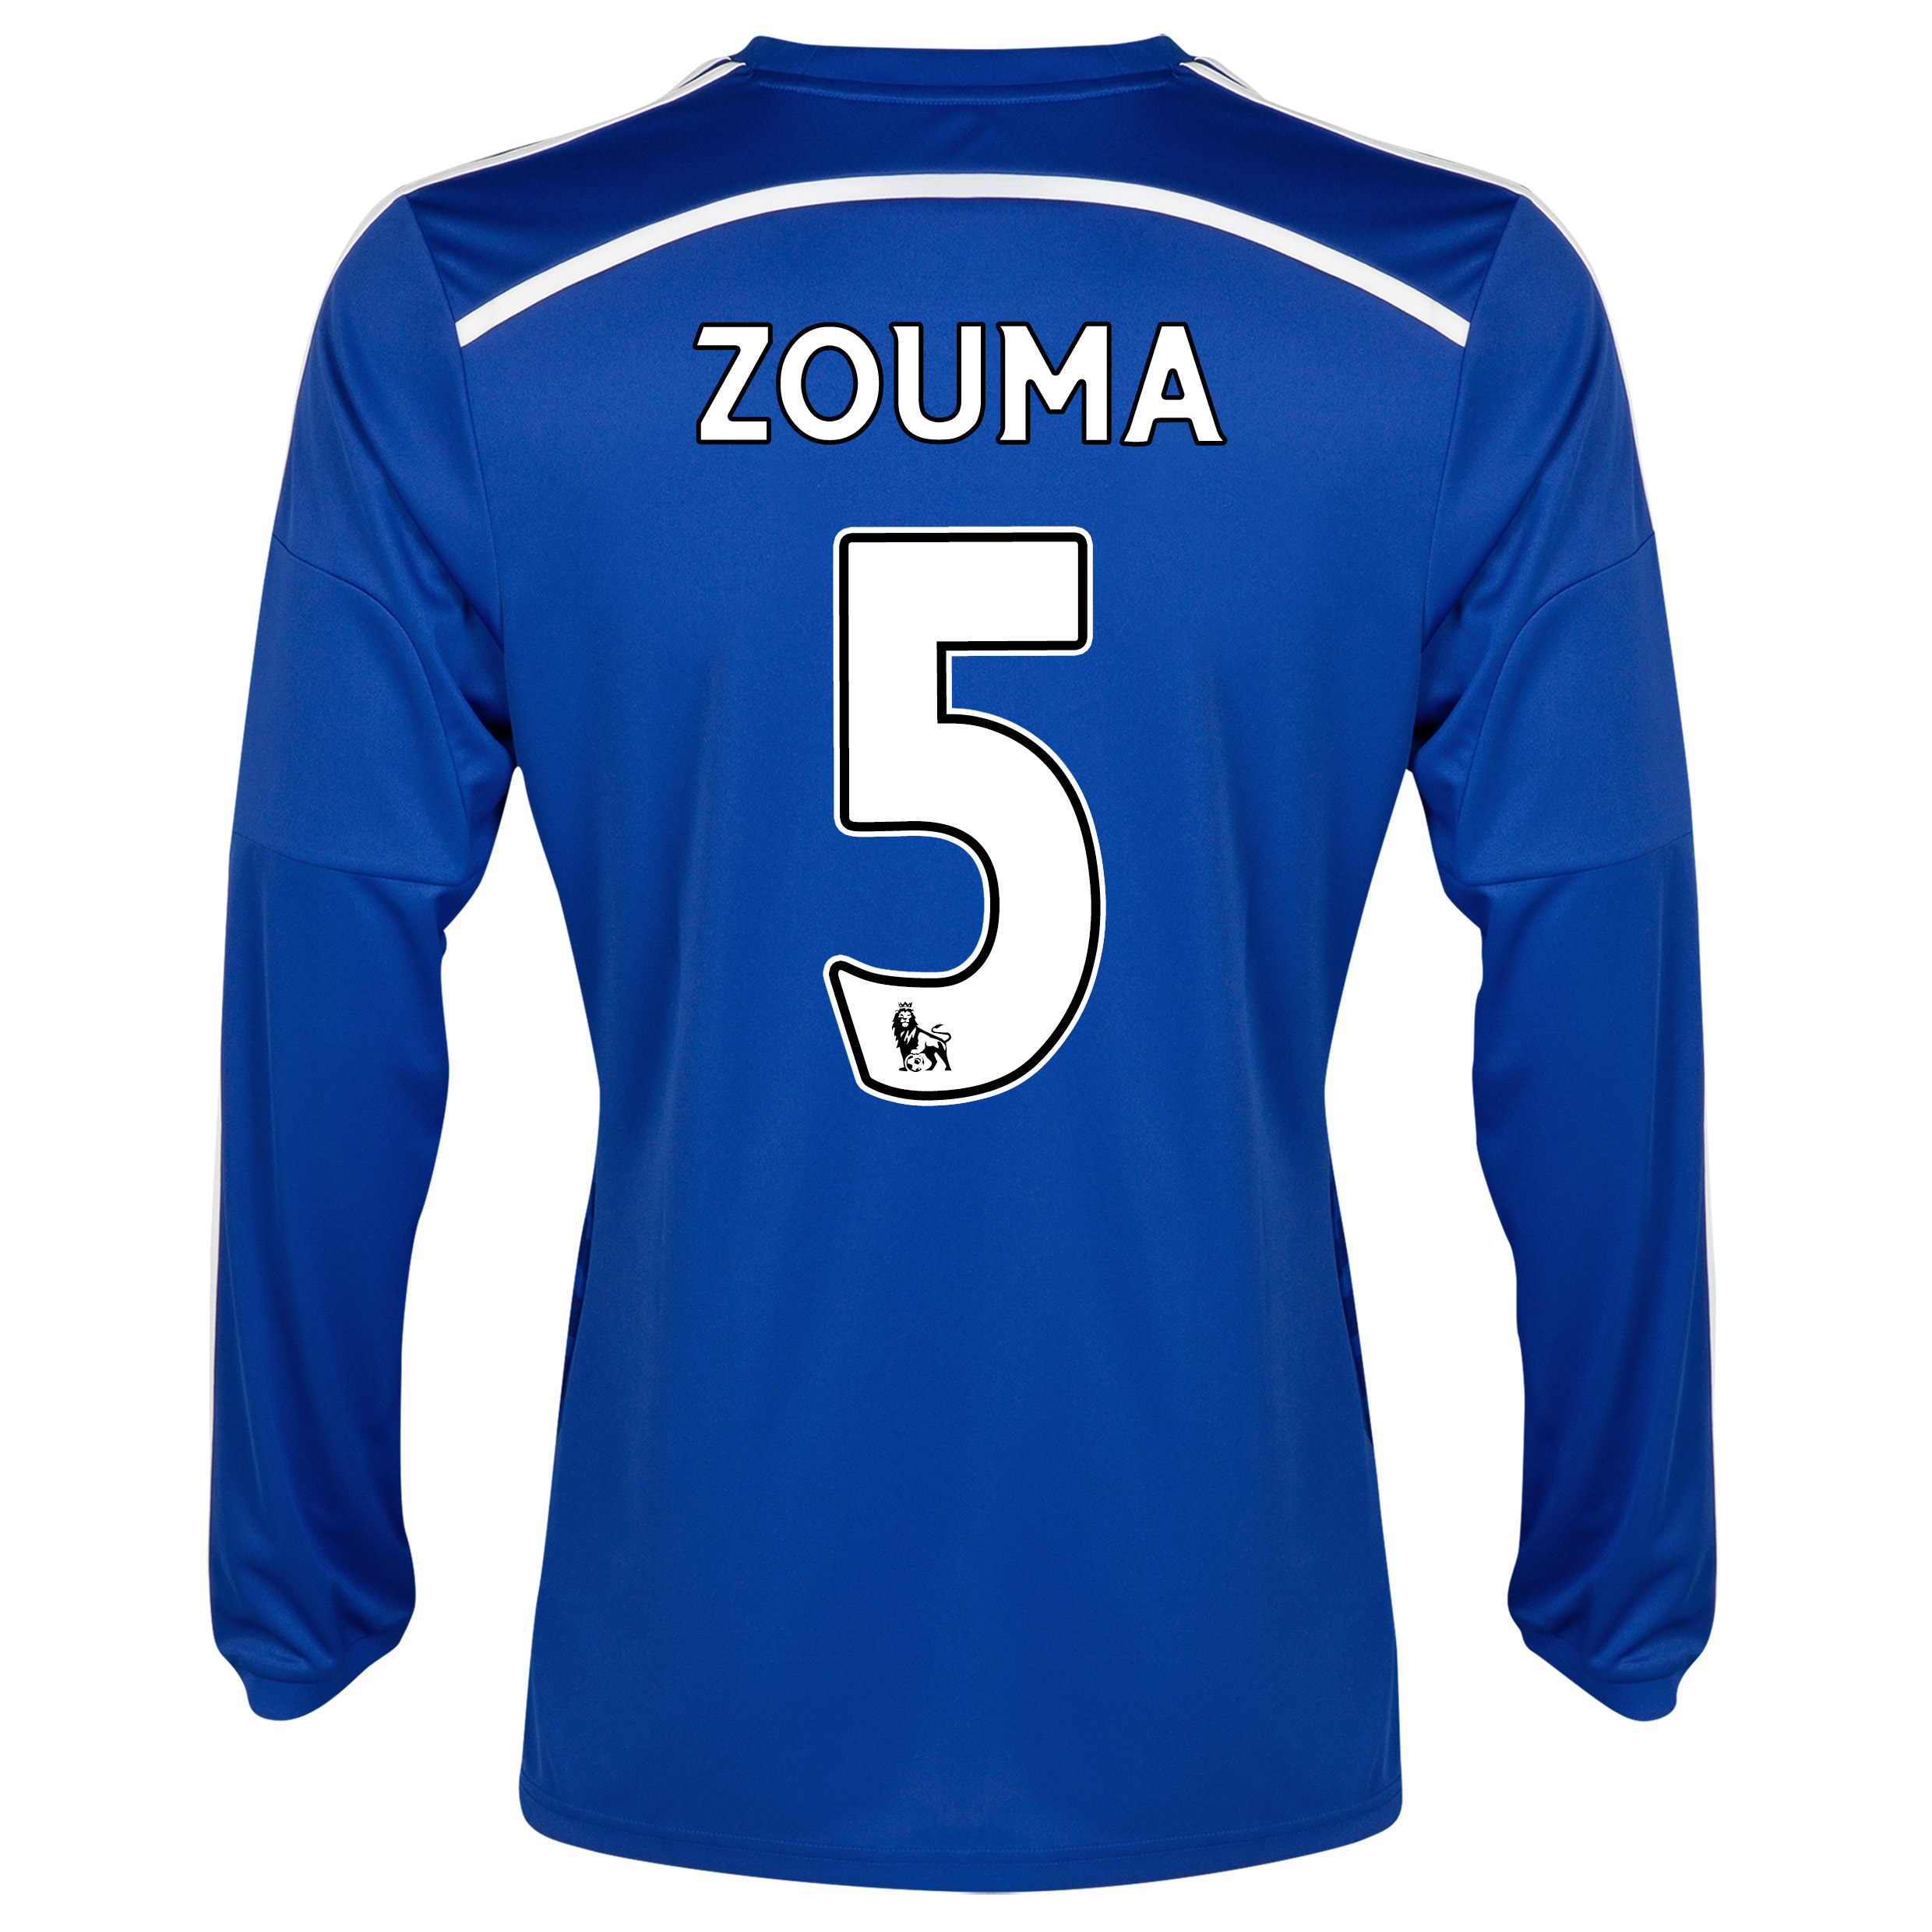 Chelsea Home Shirt 2014/15 - Long Sleeve with ZOUMA 5 printing